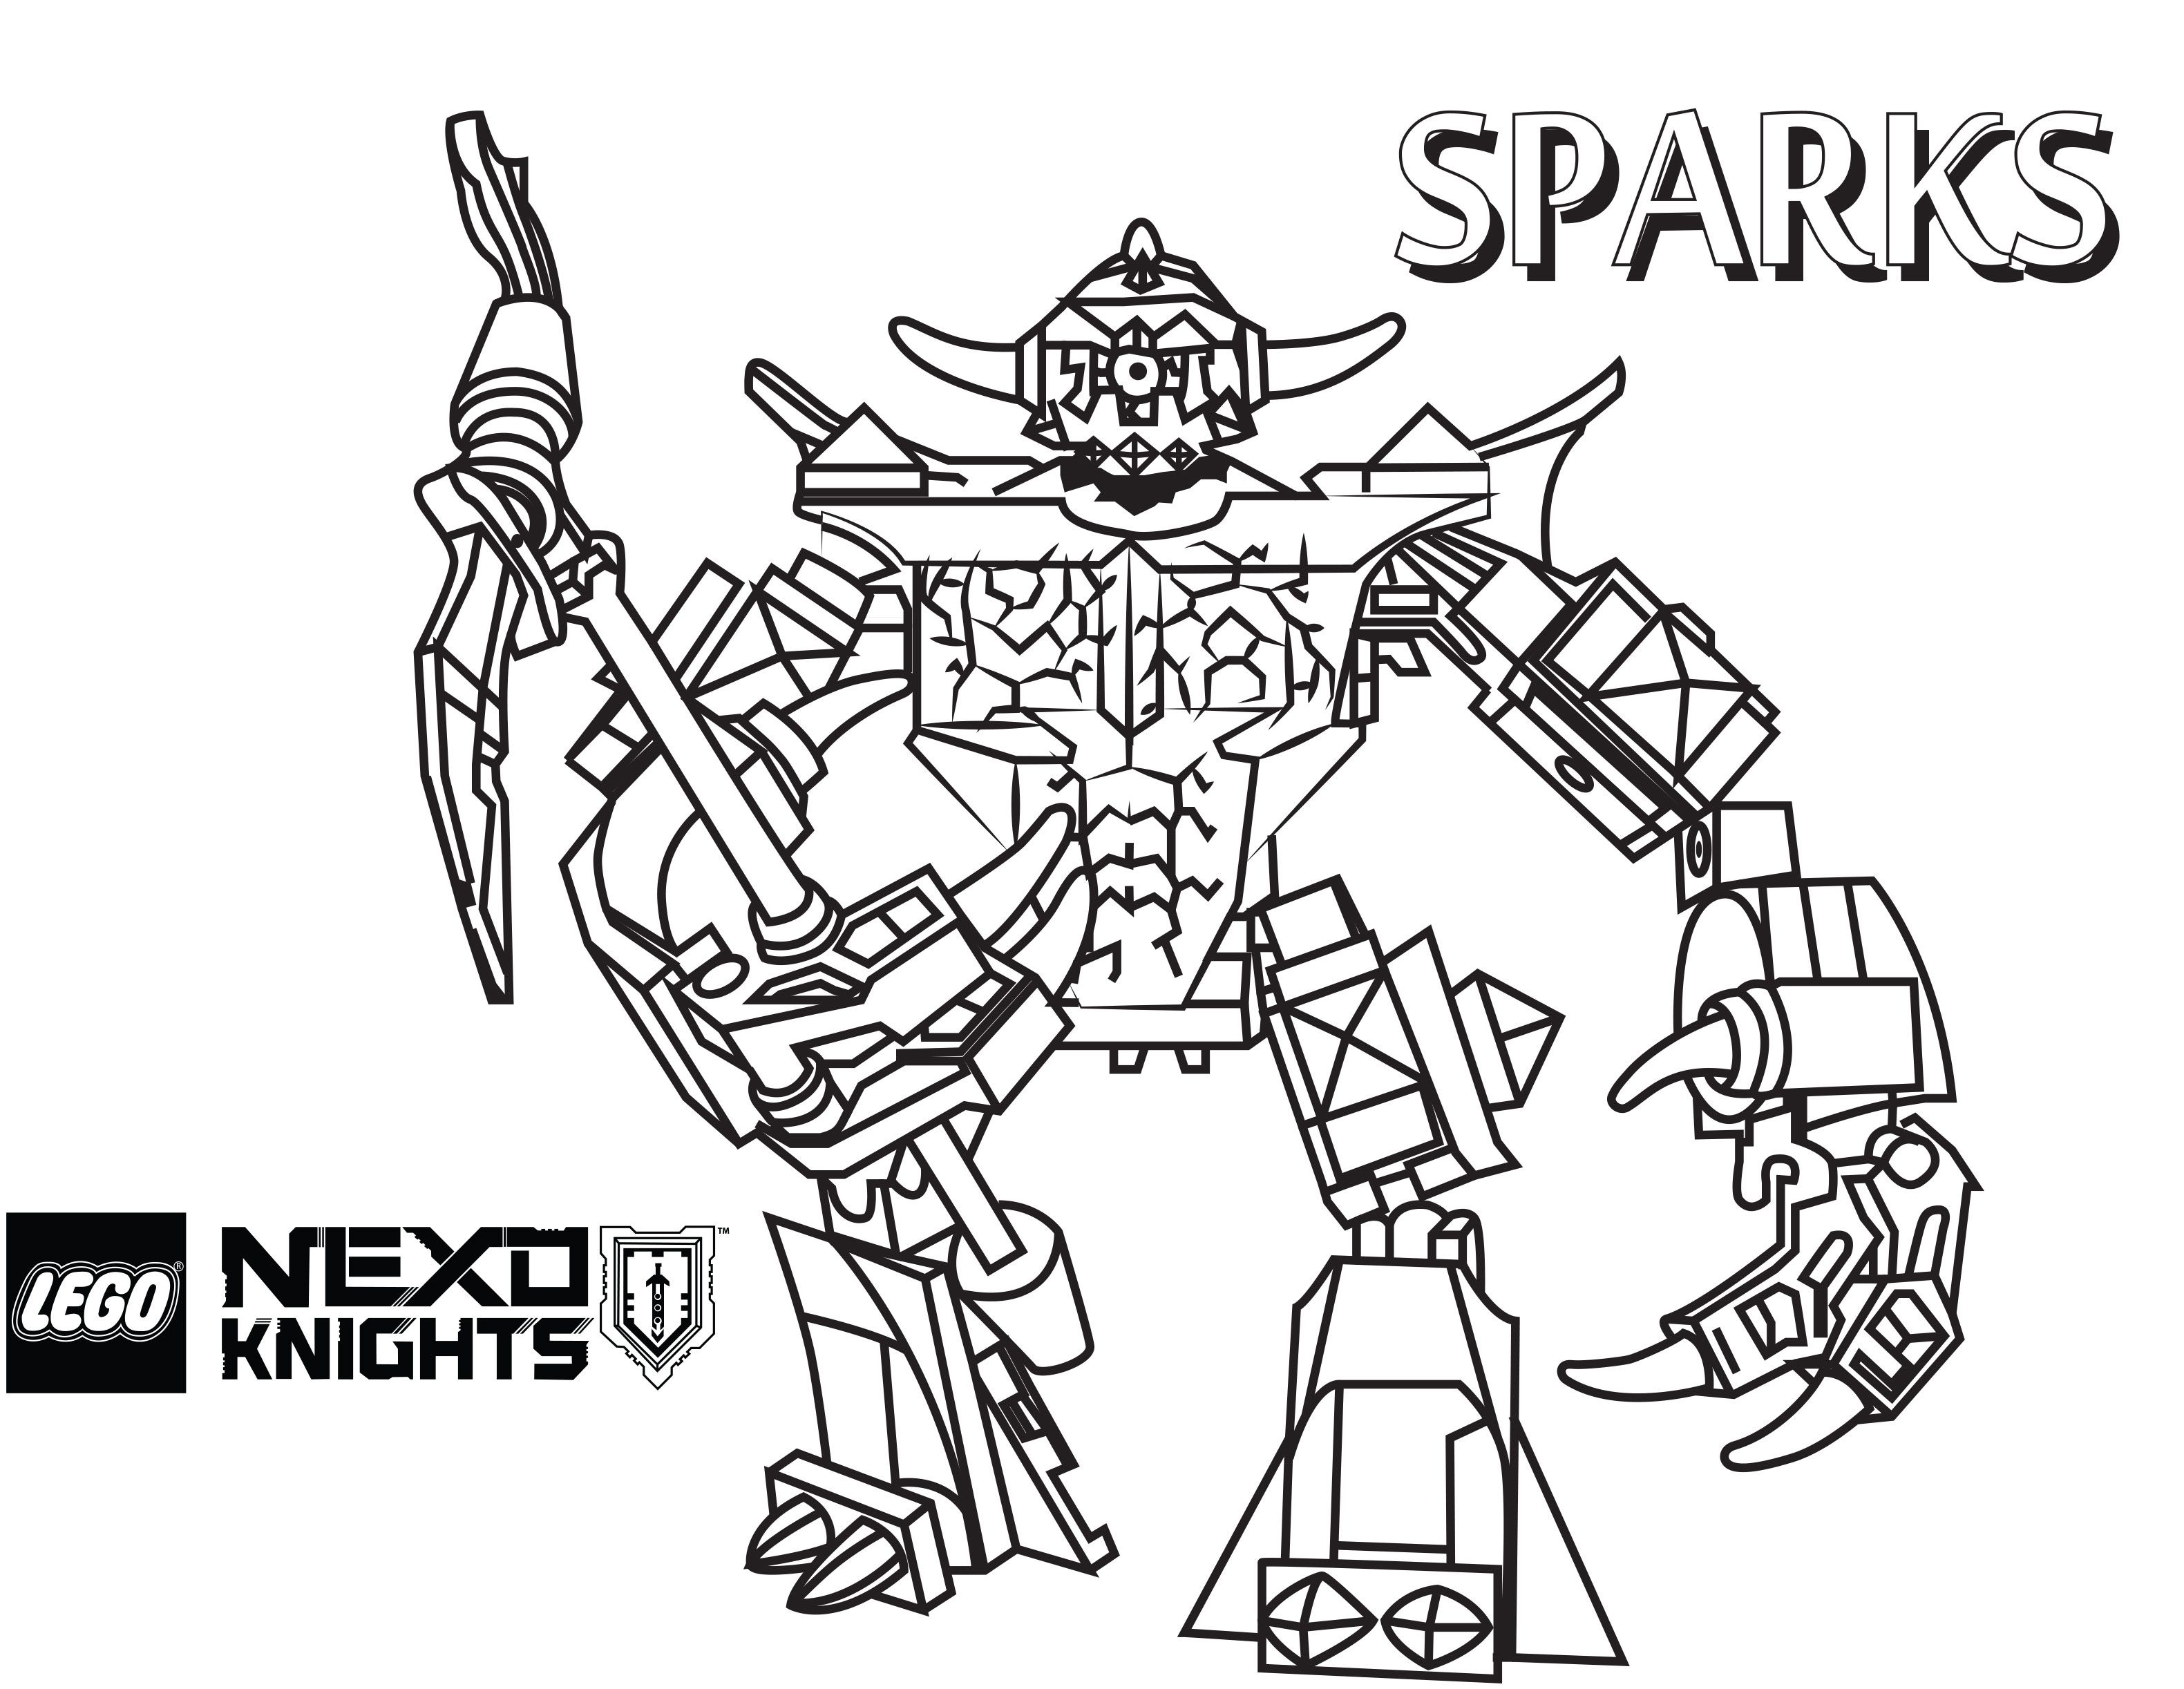 Nexo Knights Ausmalbilder Jestro : Nexo Lego Knights Coloring Pages Crafts Pinterest Lego Knights